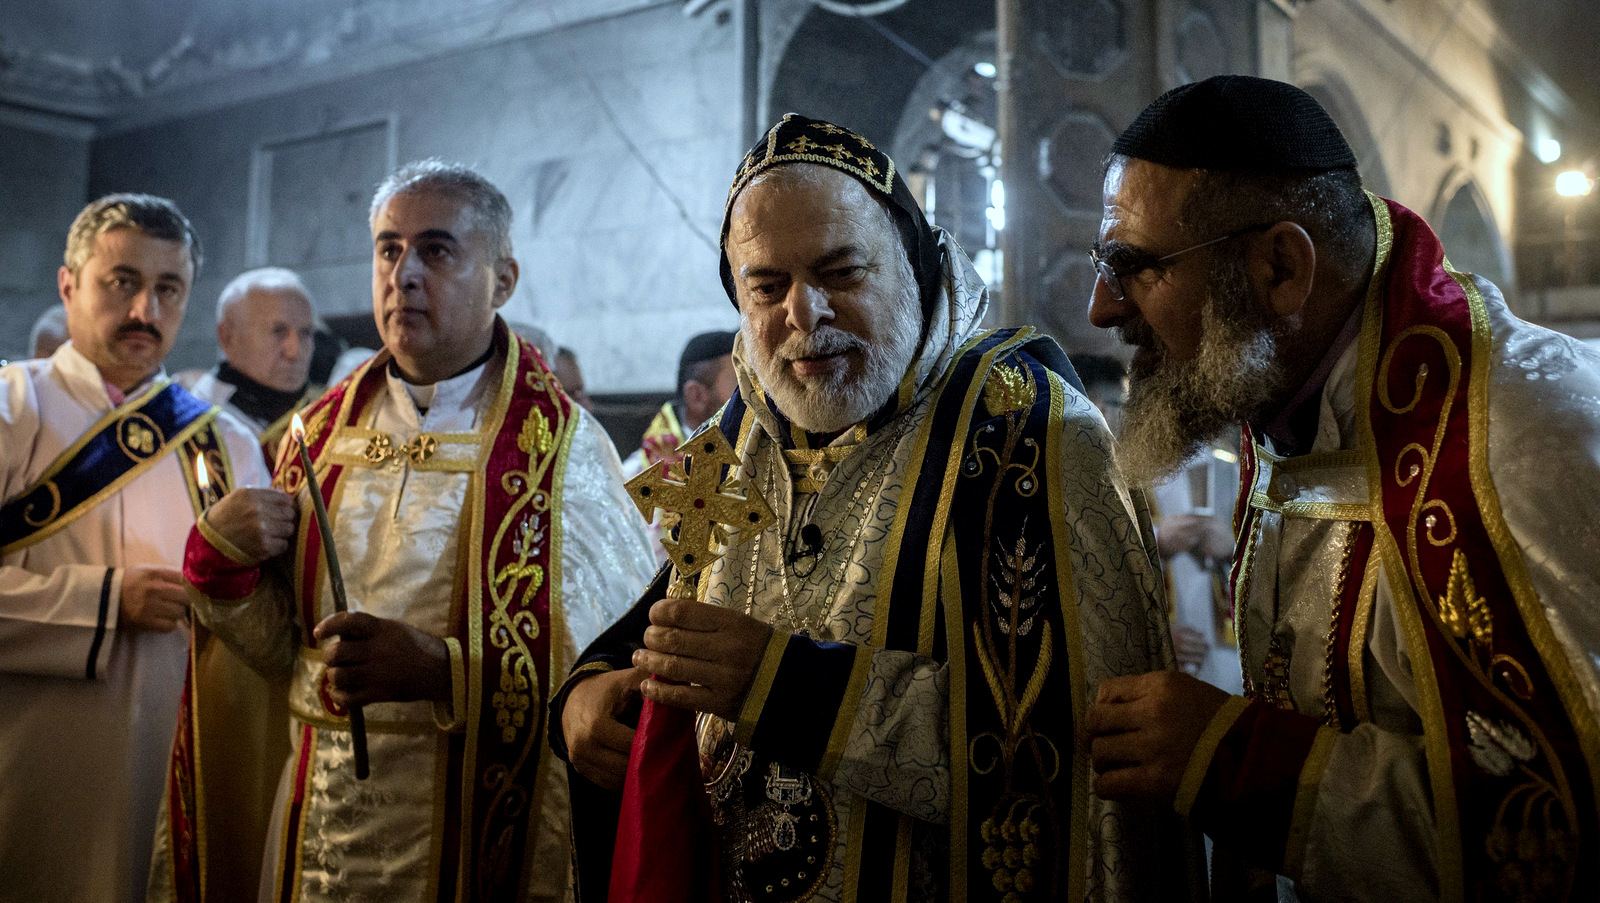 Priests lead a Christmas Eve's Mass in the Assyrian Orthodox church of Mart Shmoni, in Bartella, Iraq, Saturday, December 24, 2016. For the 300 Christians who braved rain and wind to attend the mass in their hometown, the ceremony provided them with as much holiday cheer as grim reminders of the war still raging on around their northern Iraqi town and the distant prospect of moving back home. Displaced when the Islamic State seized their town in 2014, they were bused into the town from Irbil, capital of the self-ruled Kurdish region, where they have lived for more than two years. (AP Photo/Cengiz Yar)